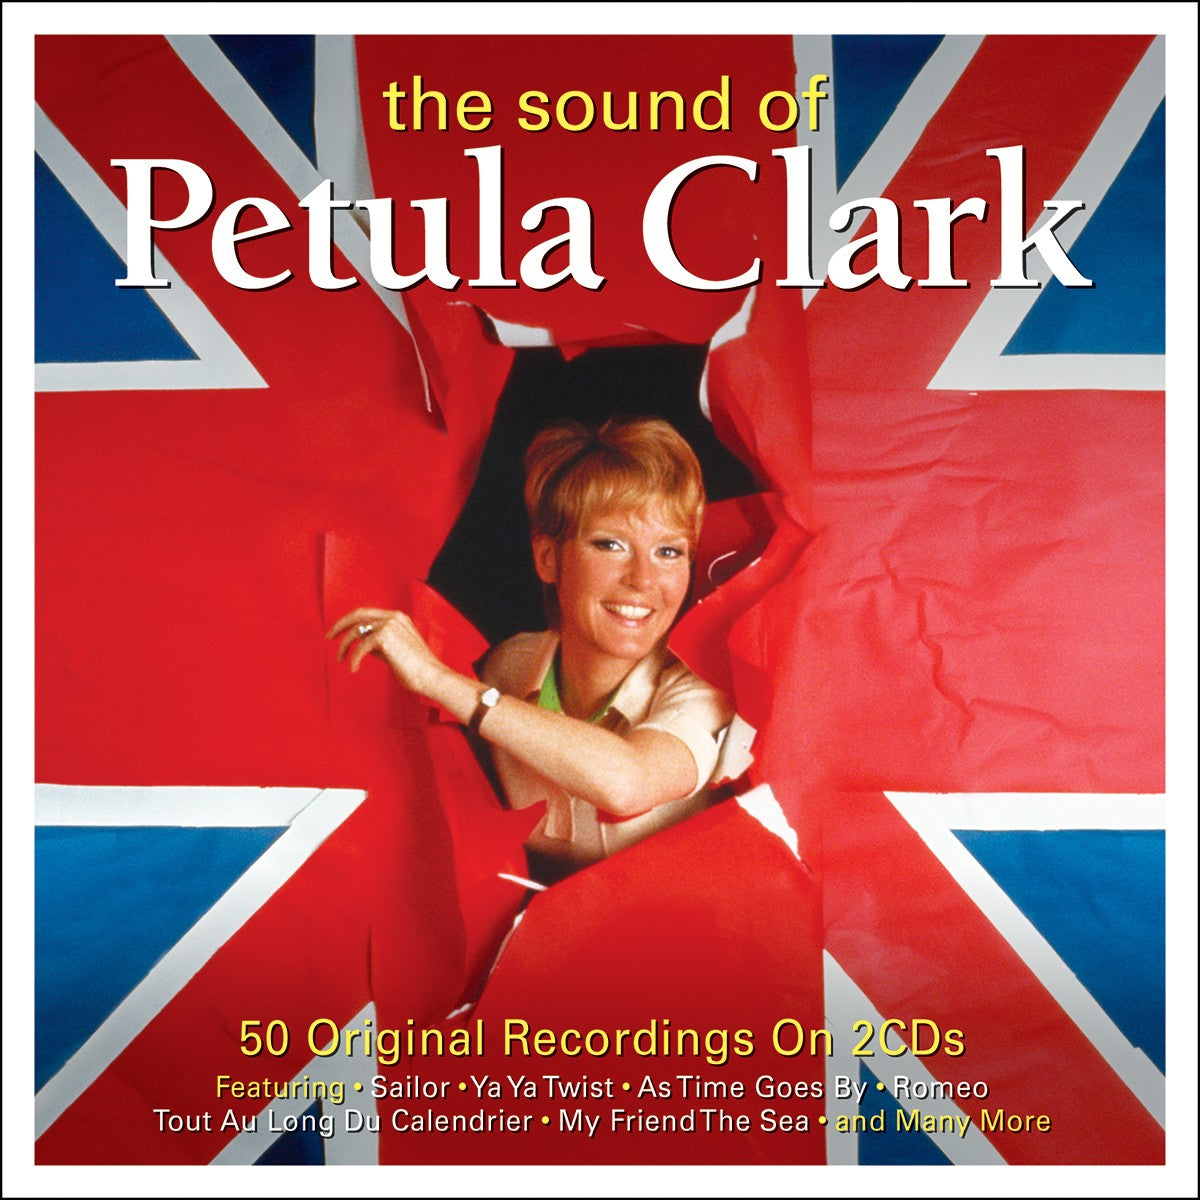 PETULA CLARK: The Sound Of Petula Clark (2 CDs)